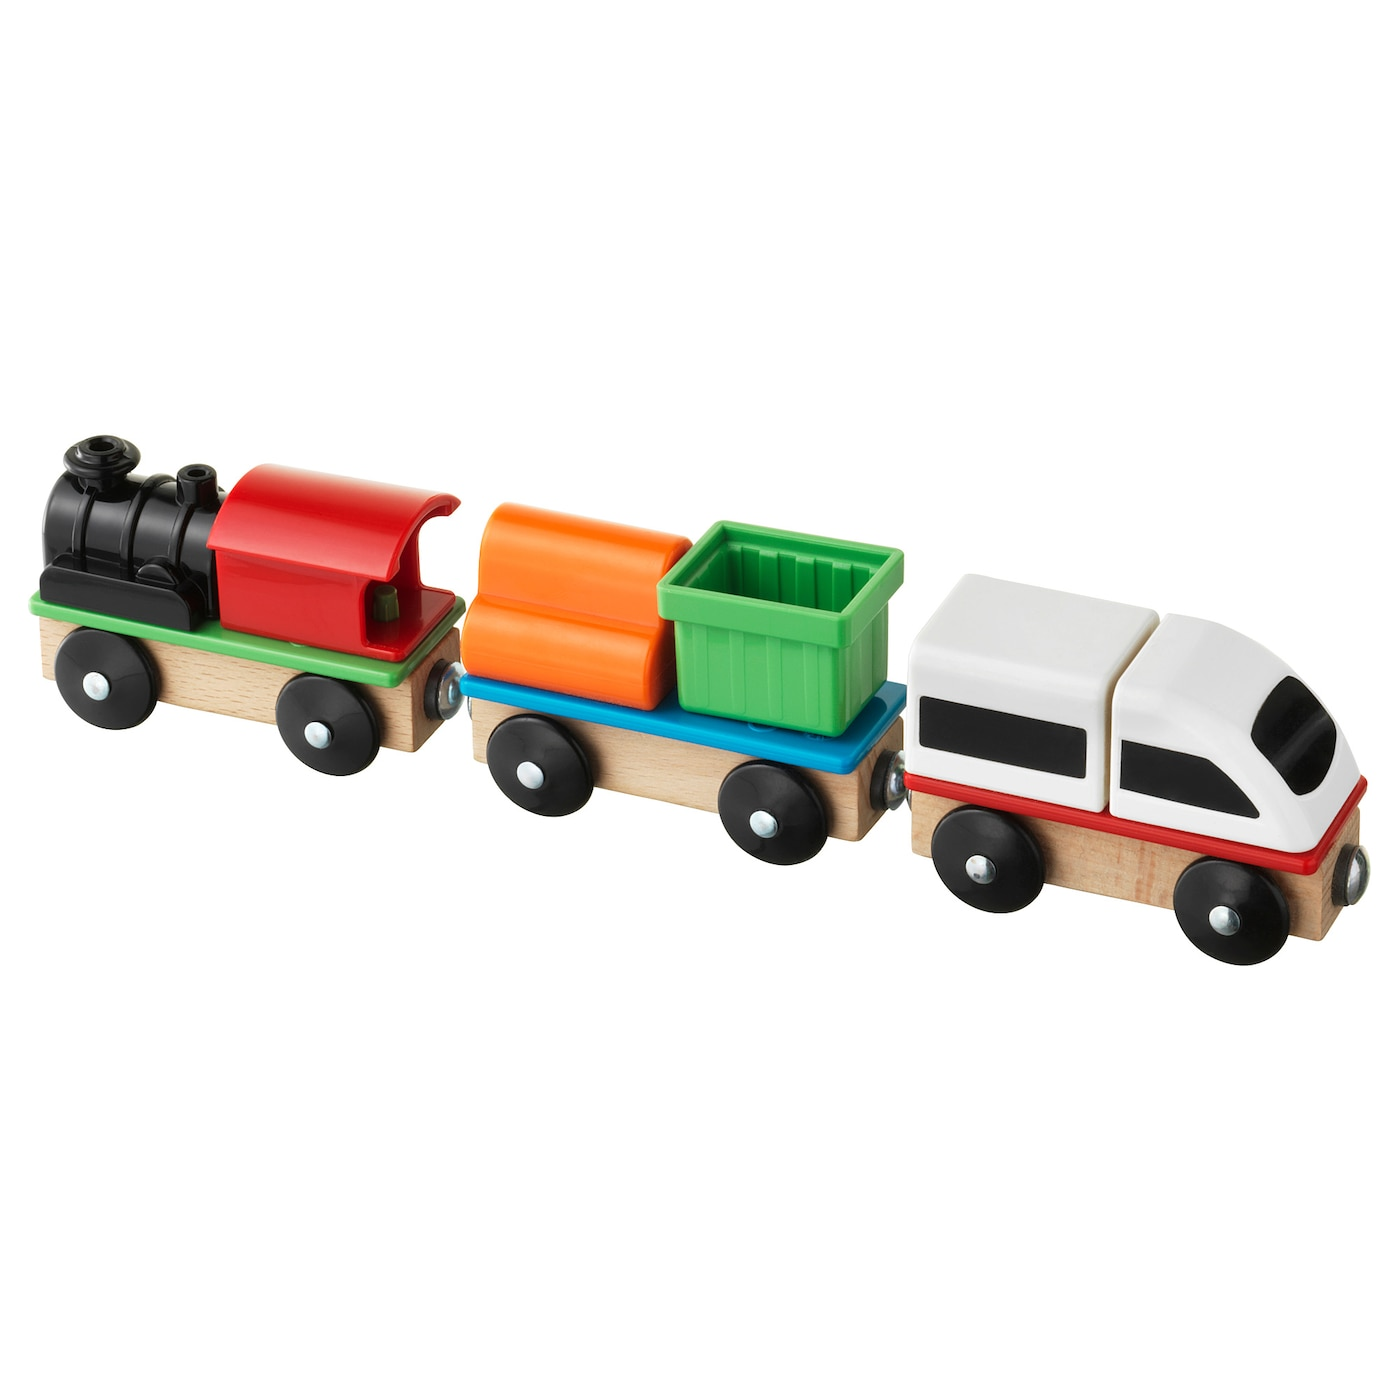 IKEA LILLABO 3-piece train set Develops your child's concentration skills and hand-eye coordination.